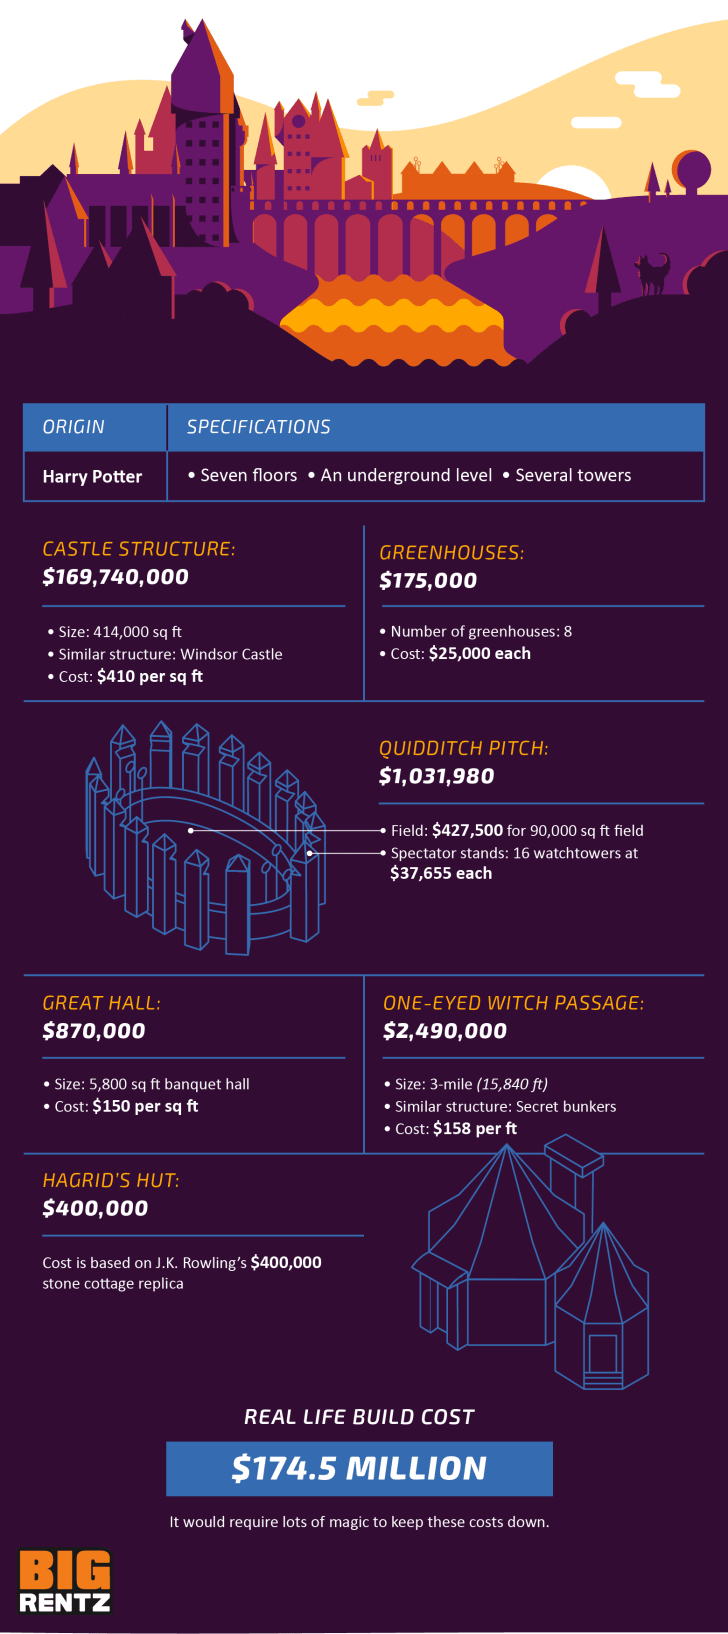 An infographic details the cost breakdown of various aspects of Hogwarts Castle